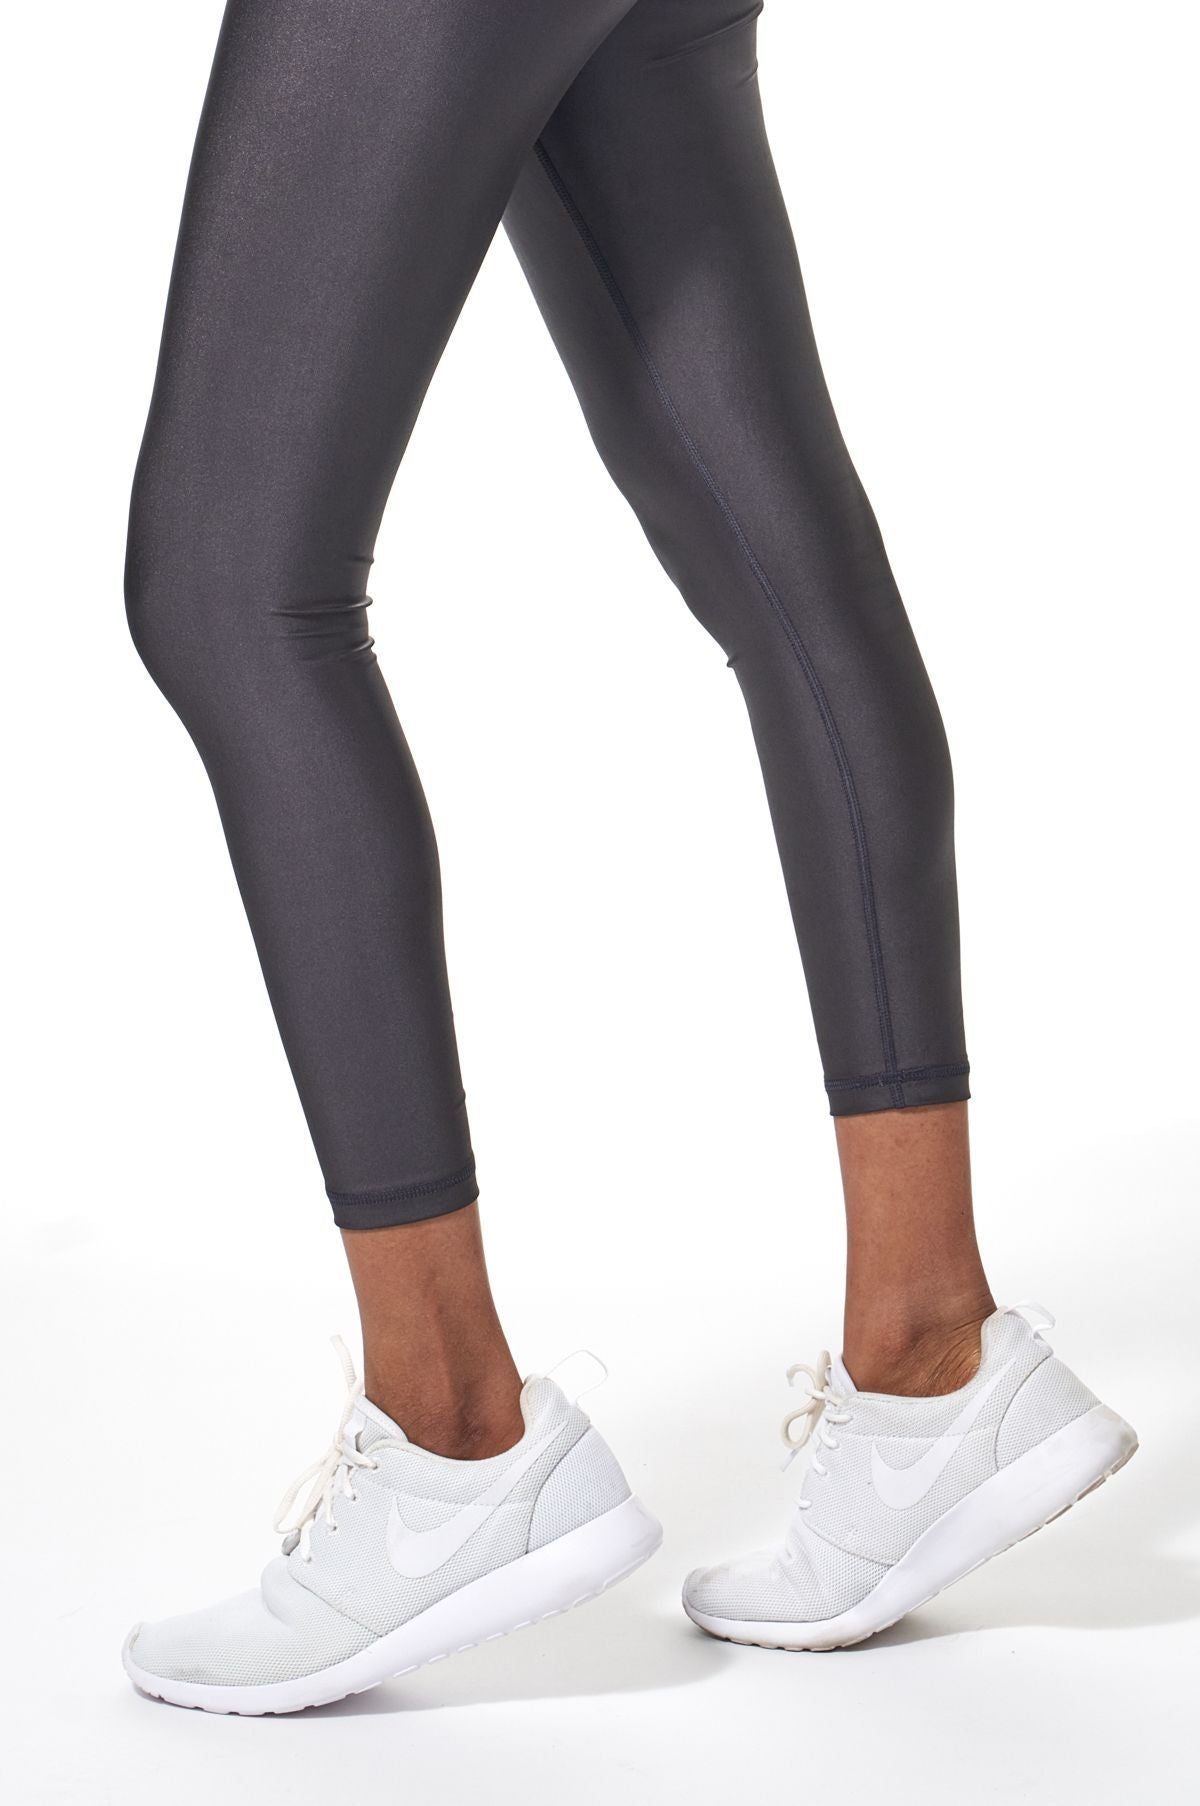 High Shine Signature Tight Asphalt, tights - shopdyi.com